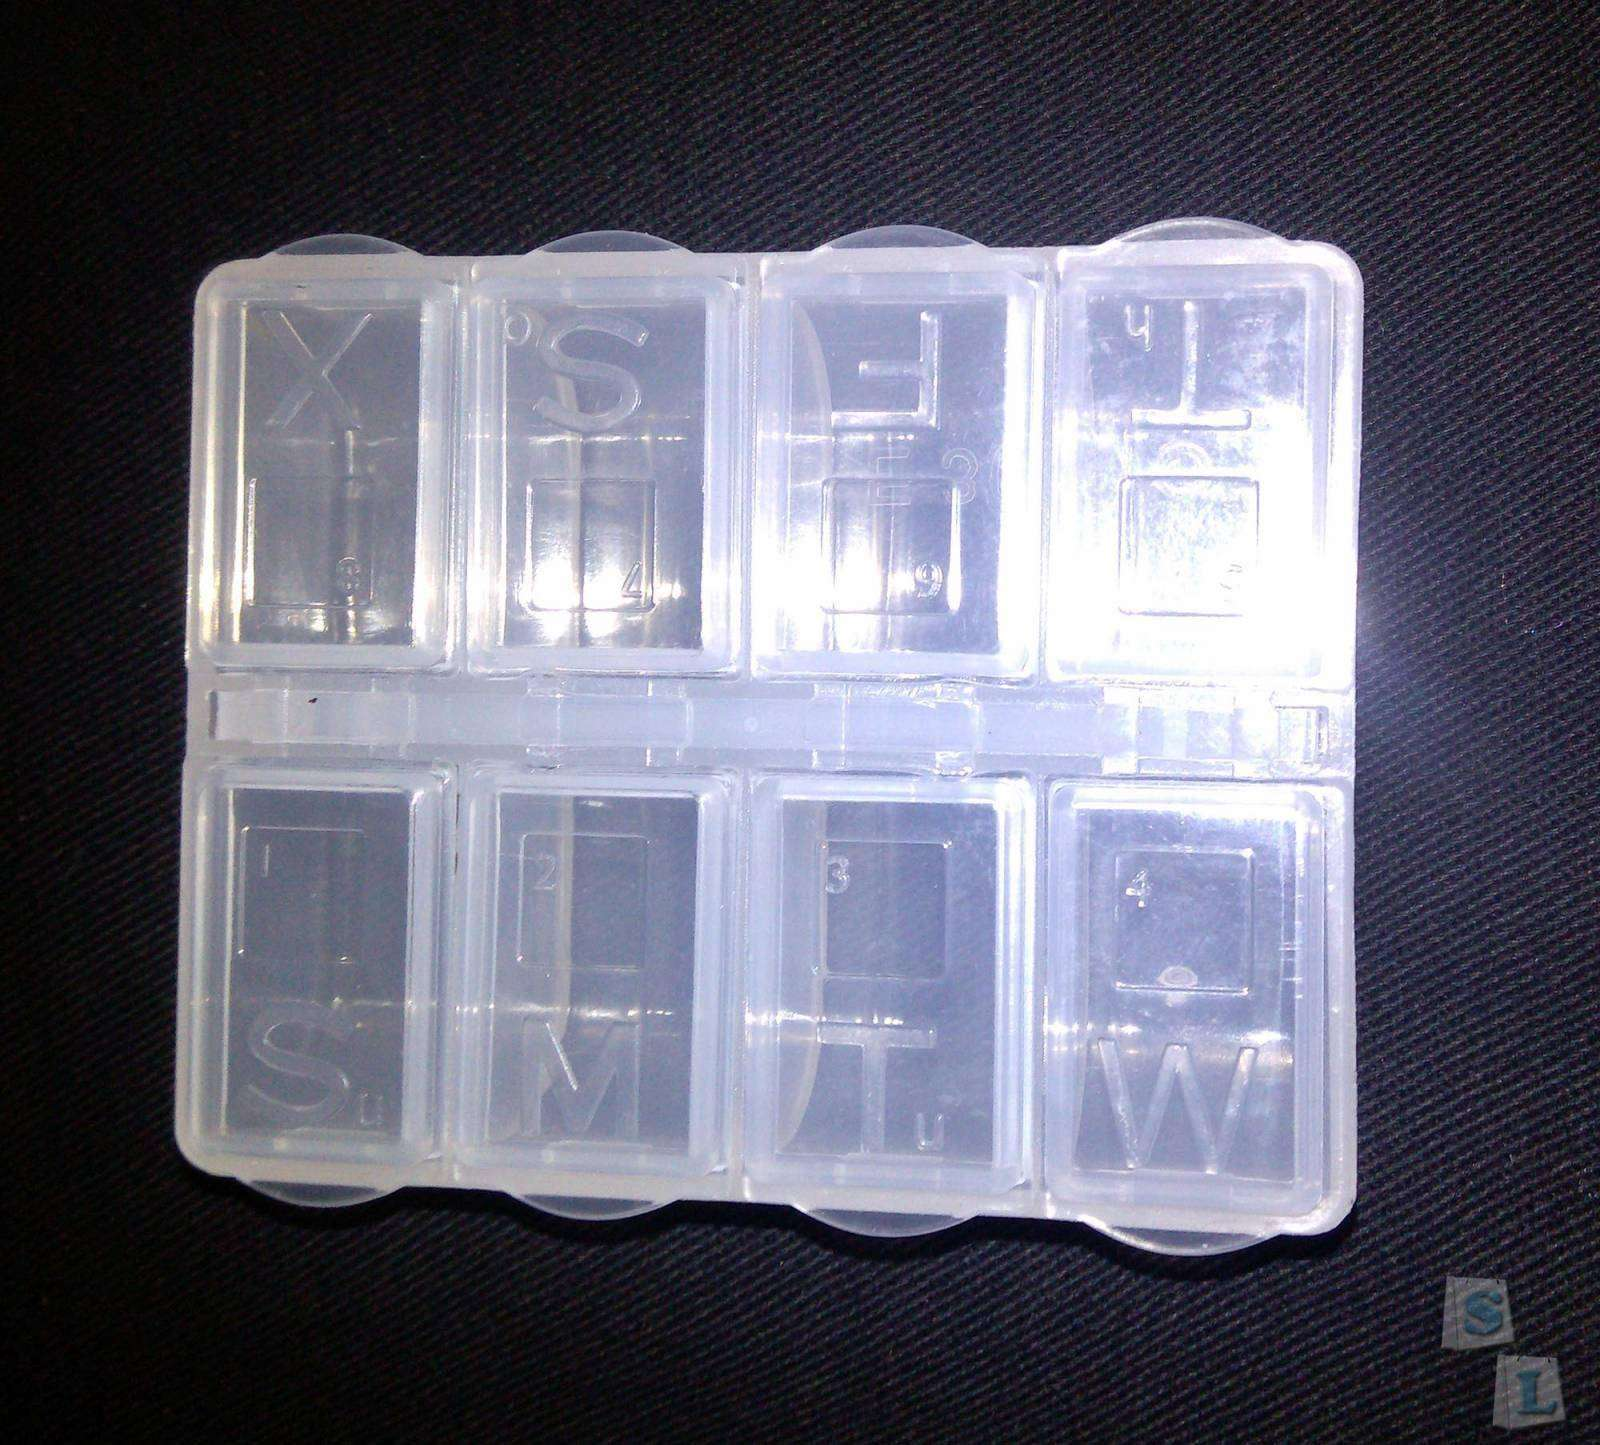 Aliexpress: Storage Case Box